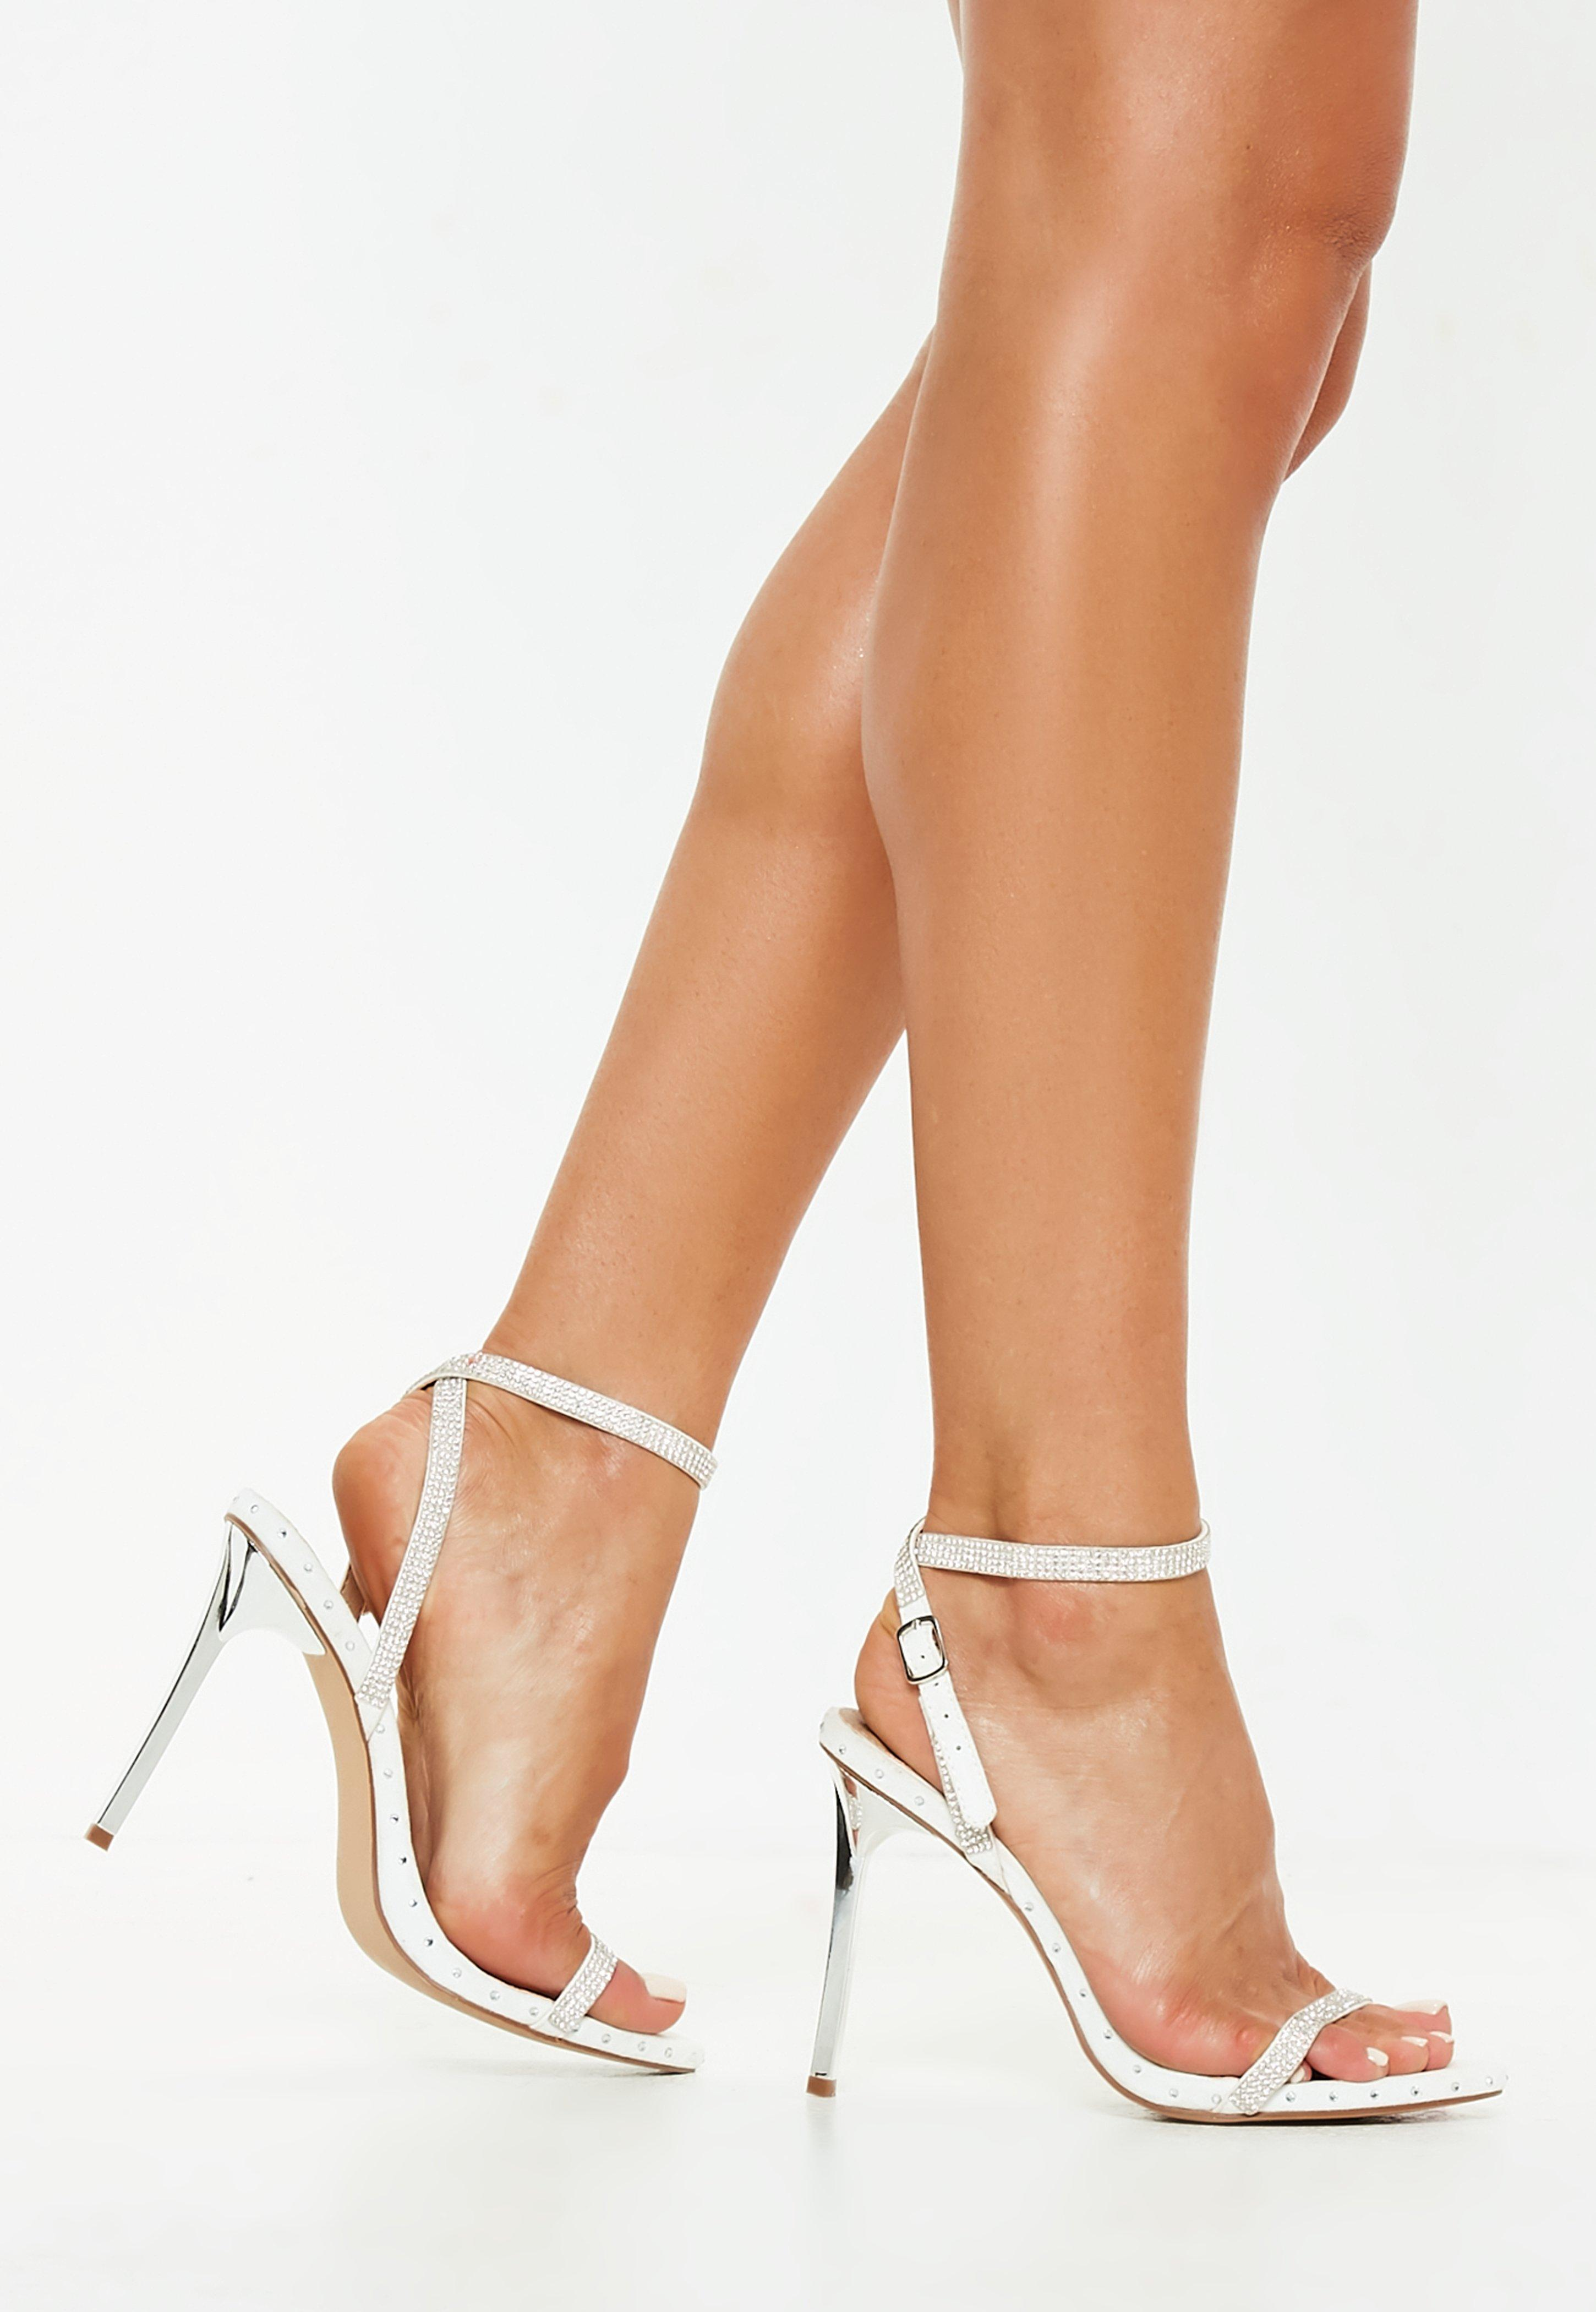 7c4cc7f4650 White Embellished Studded Barely There Heels